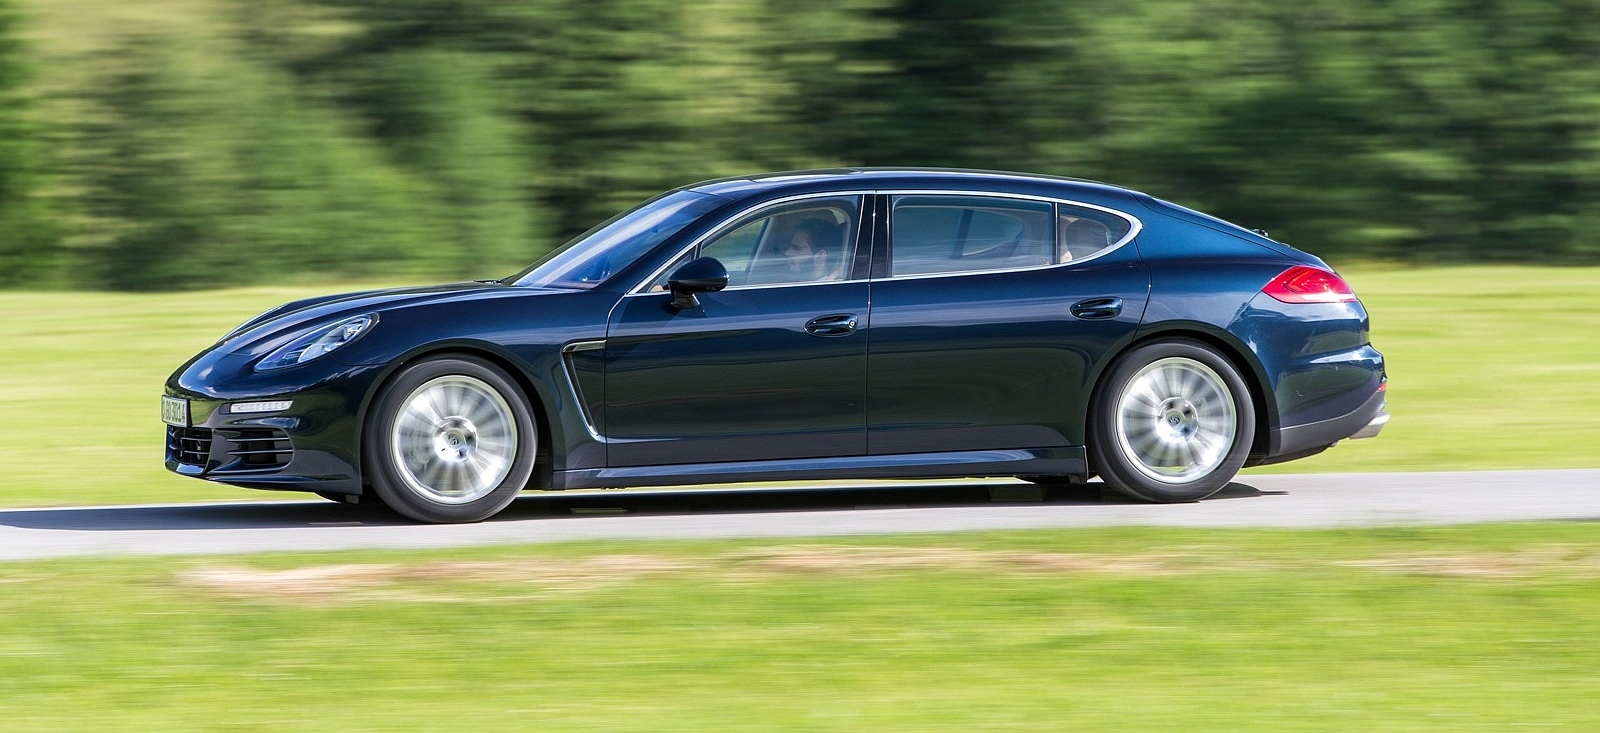 Porsche-Panamera-4S-Executive-test-drive-Drive-my.ru-2013-01